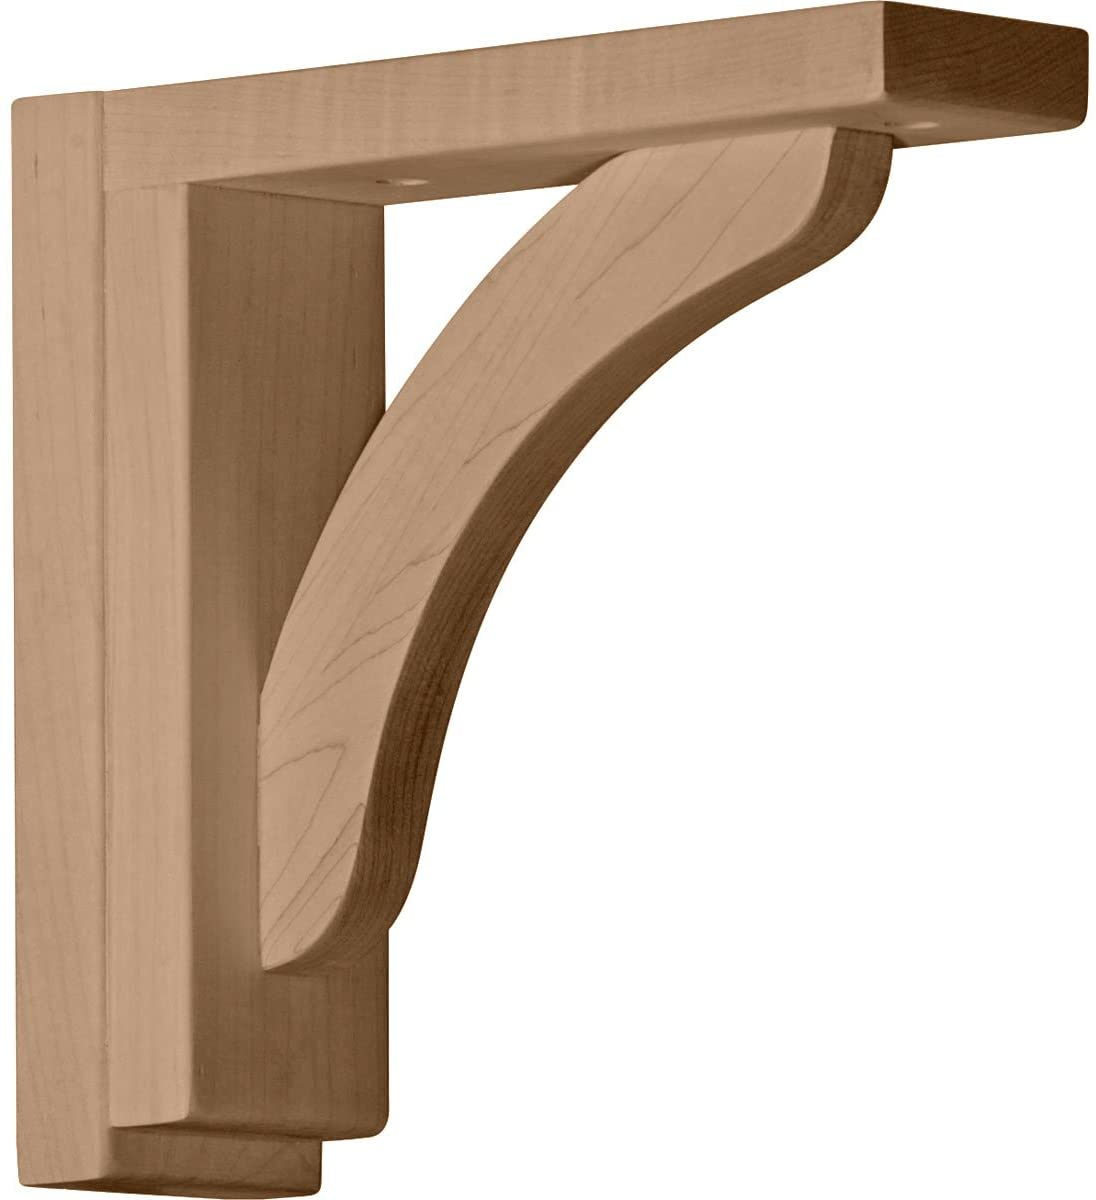 Ekena Millwork BKT02X08X08RERW-CASE-4 Reece Shelf Bracket, Rubberwood - Ready to be Stained